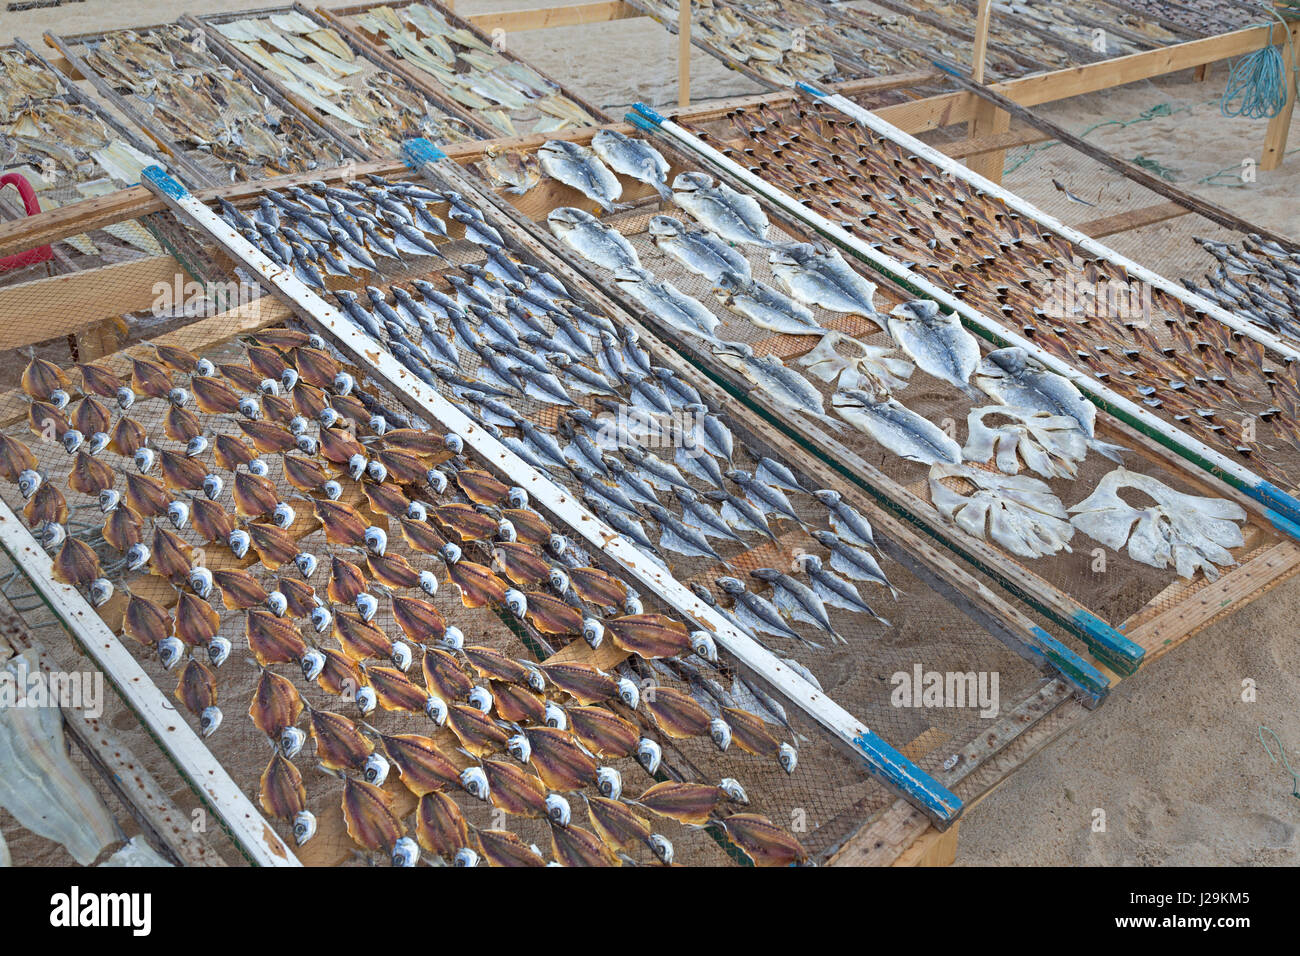 Fish drying in the sun on the beach of Nazare, Oeste, Distrikt Leiria, Portugal, Europe - Stock Image